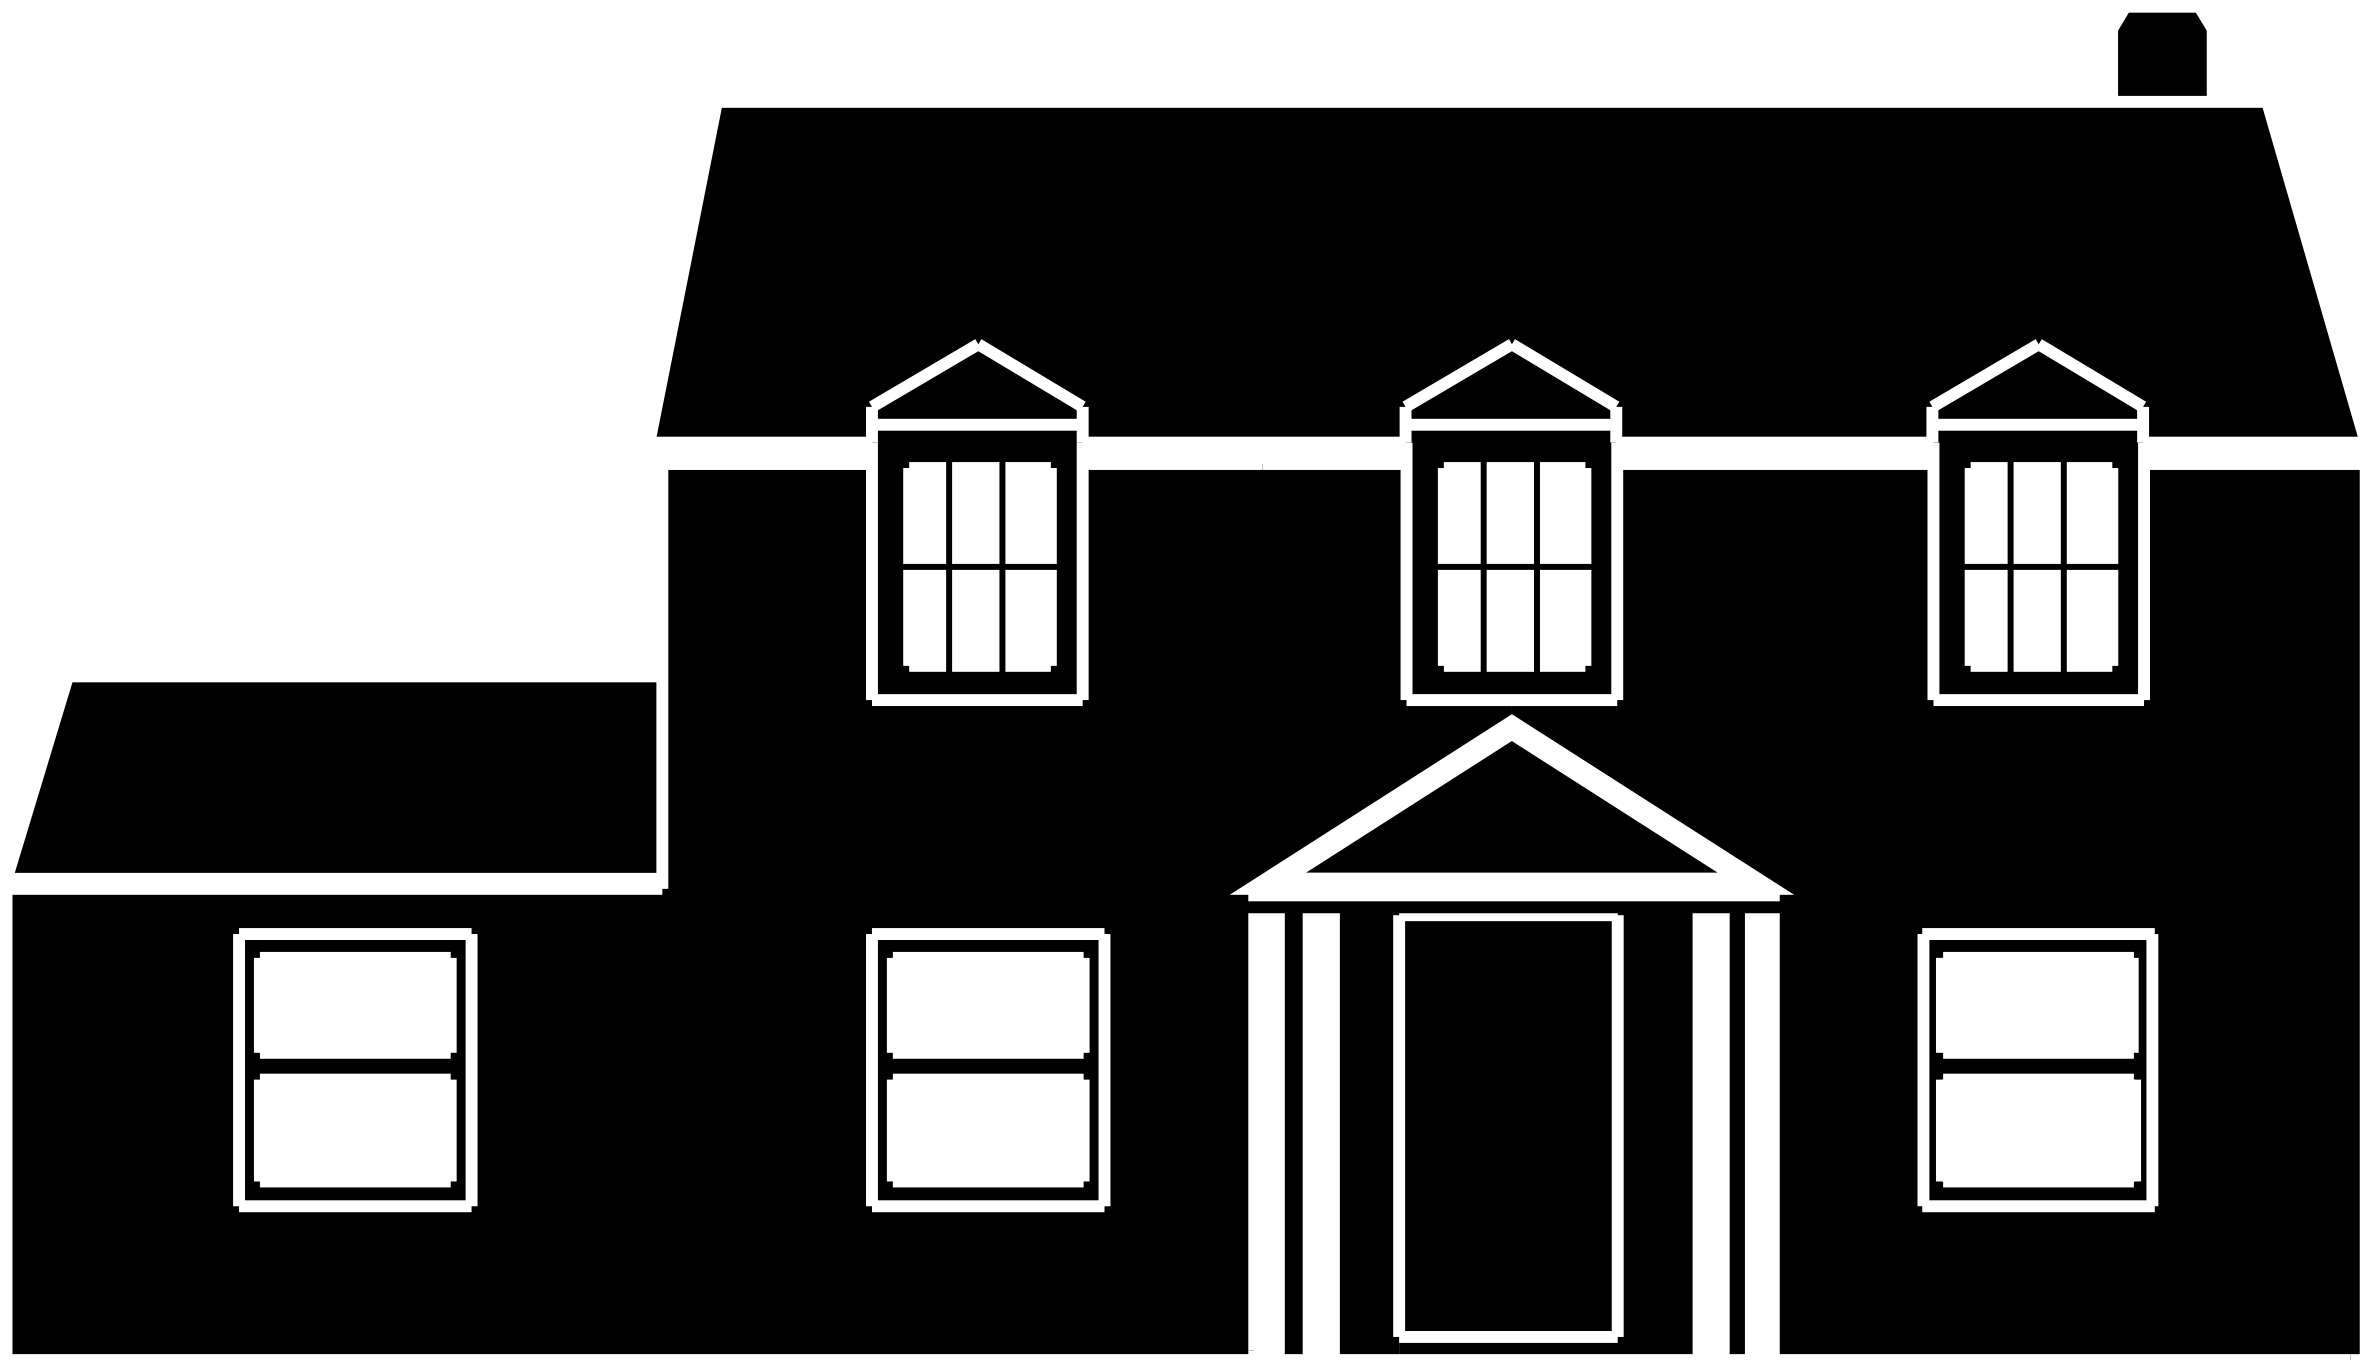 House  black and white clipart black and white house